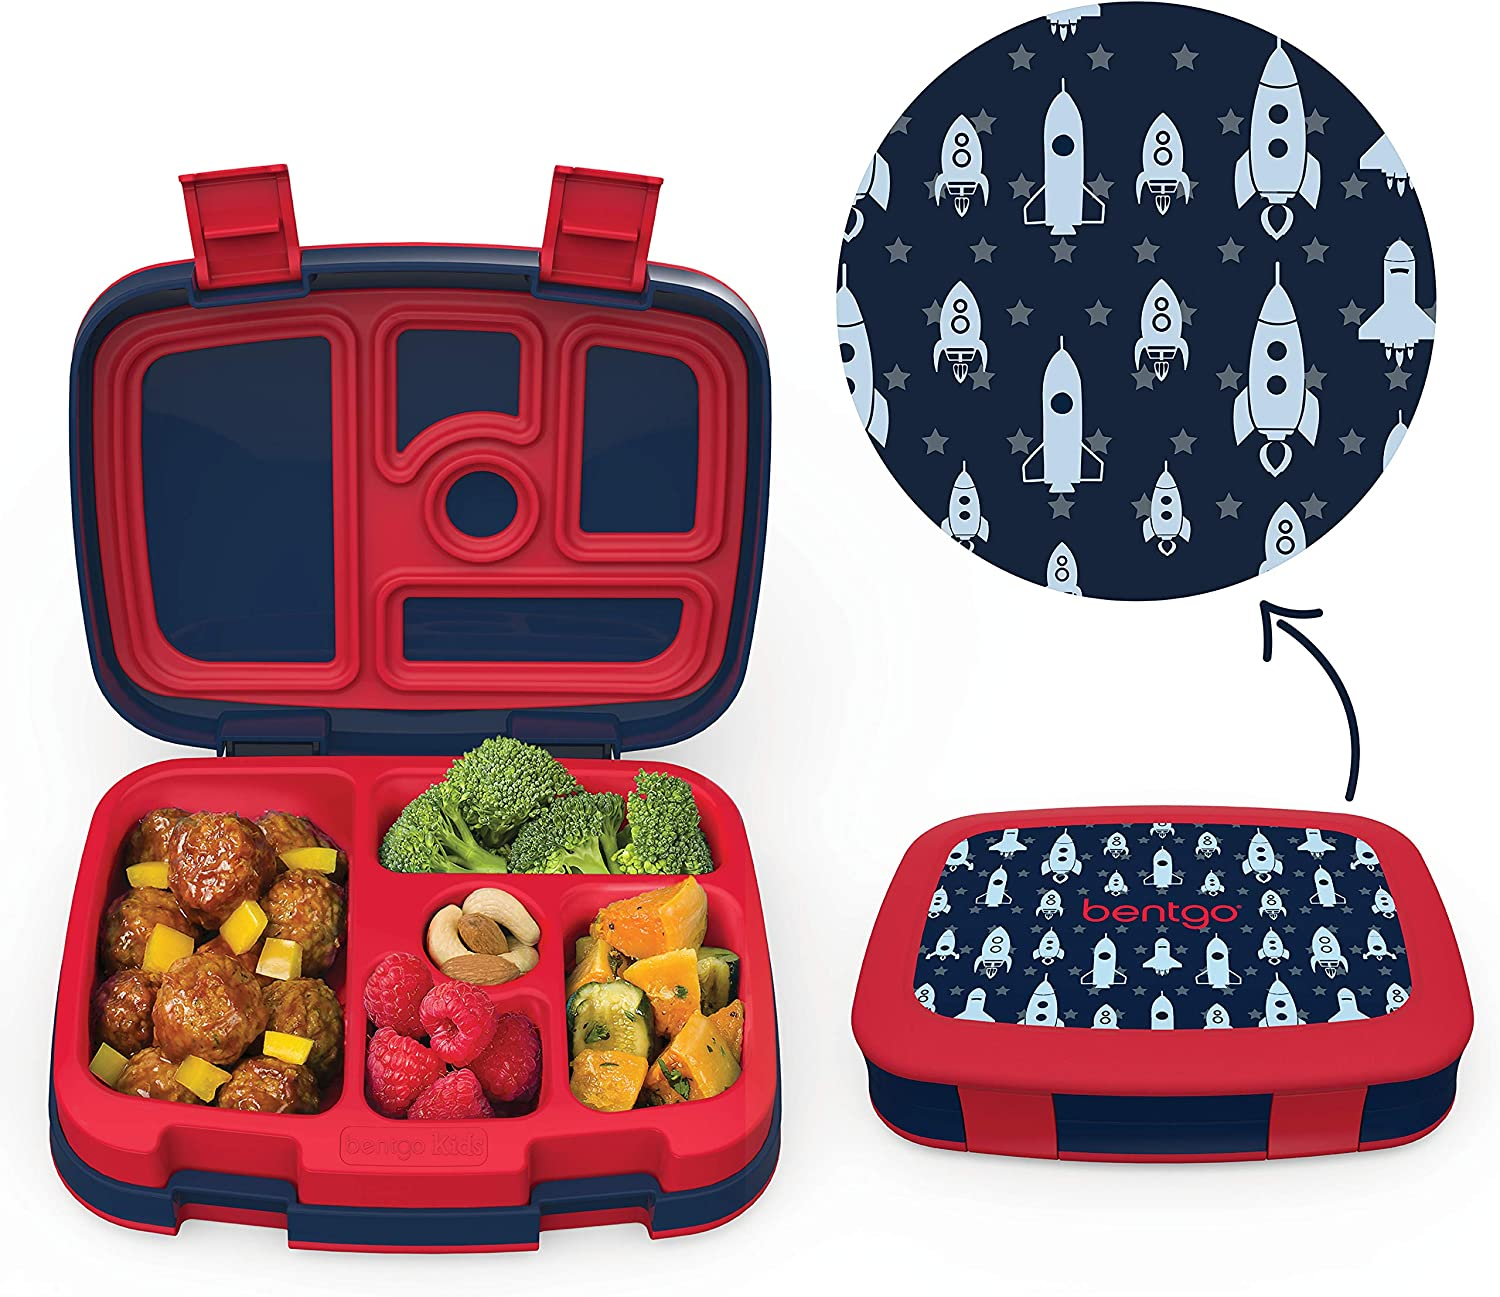 Top 9 Best Bento Box For Toddlers Lunch Time (2020 Reviews) 7